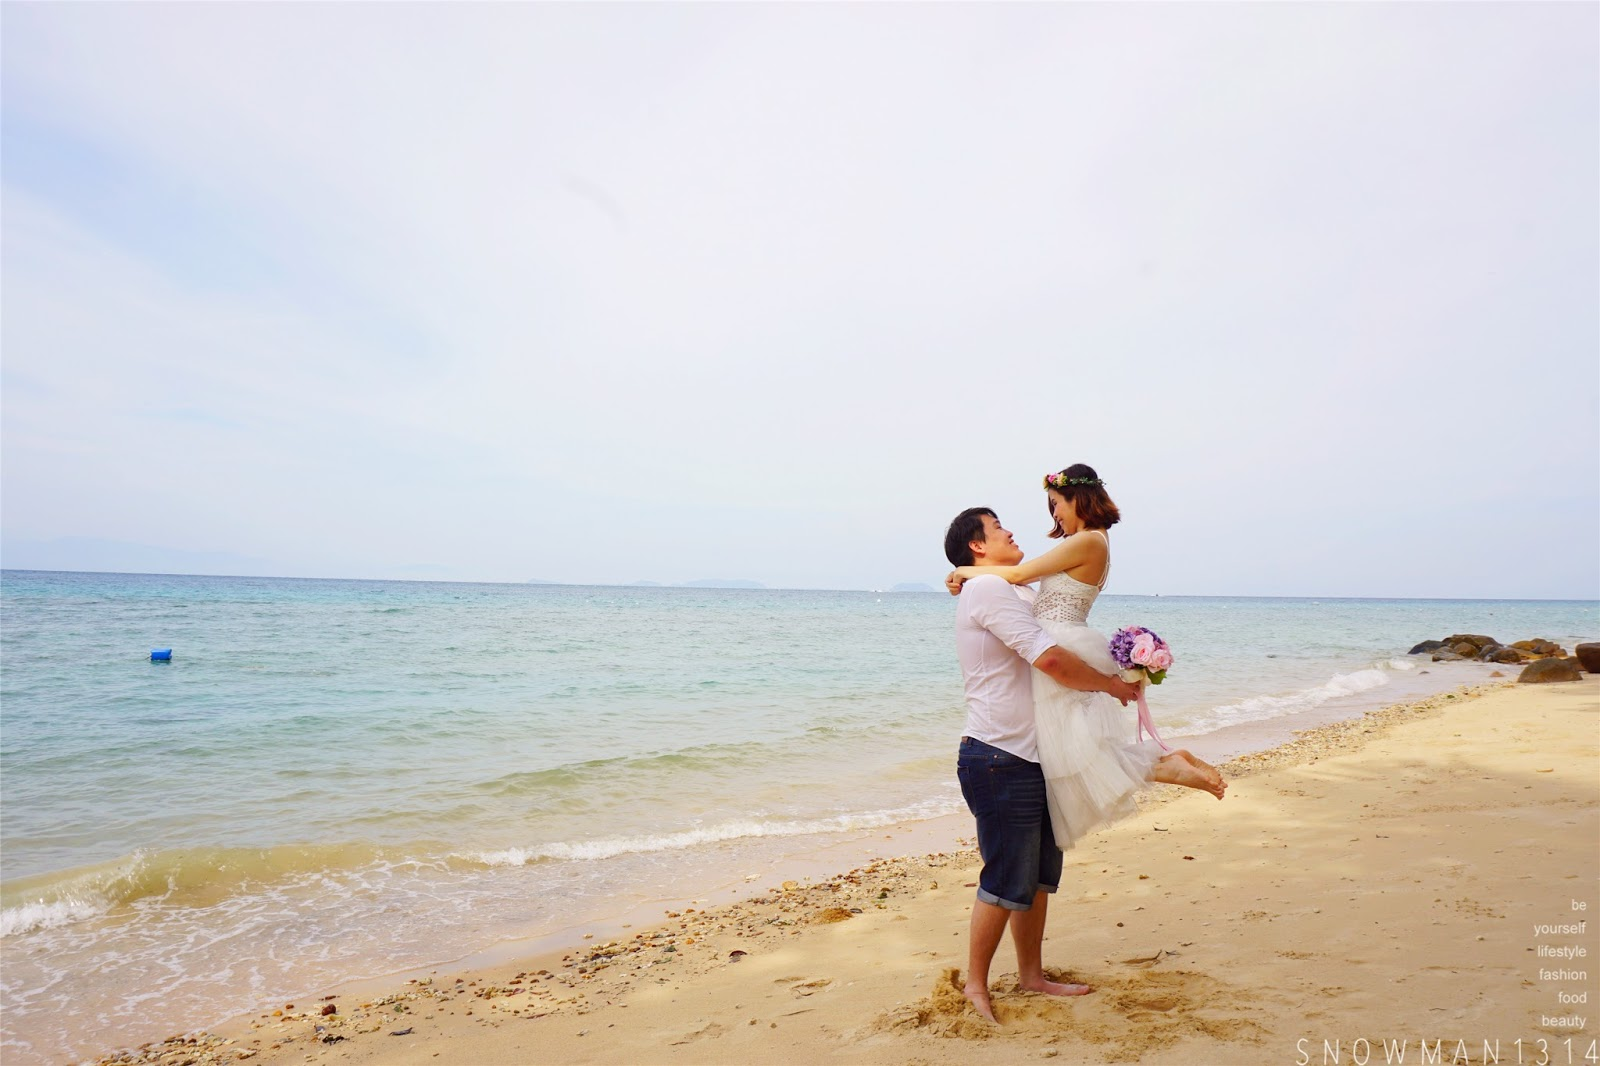 Sharon snowman1314 diy pre wedding shoot by the beach alunan at first we actually plan to have a diy wedding shot by the beach since we are both a beach person if you wanted to bring a photographer along solutioingenieria Image collections